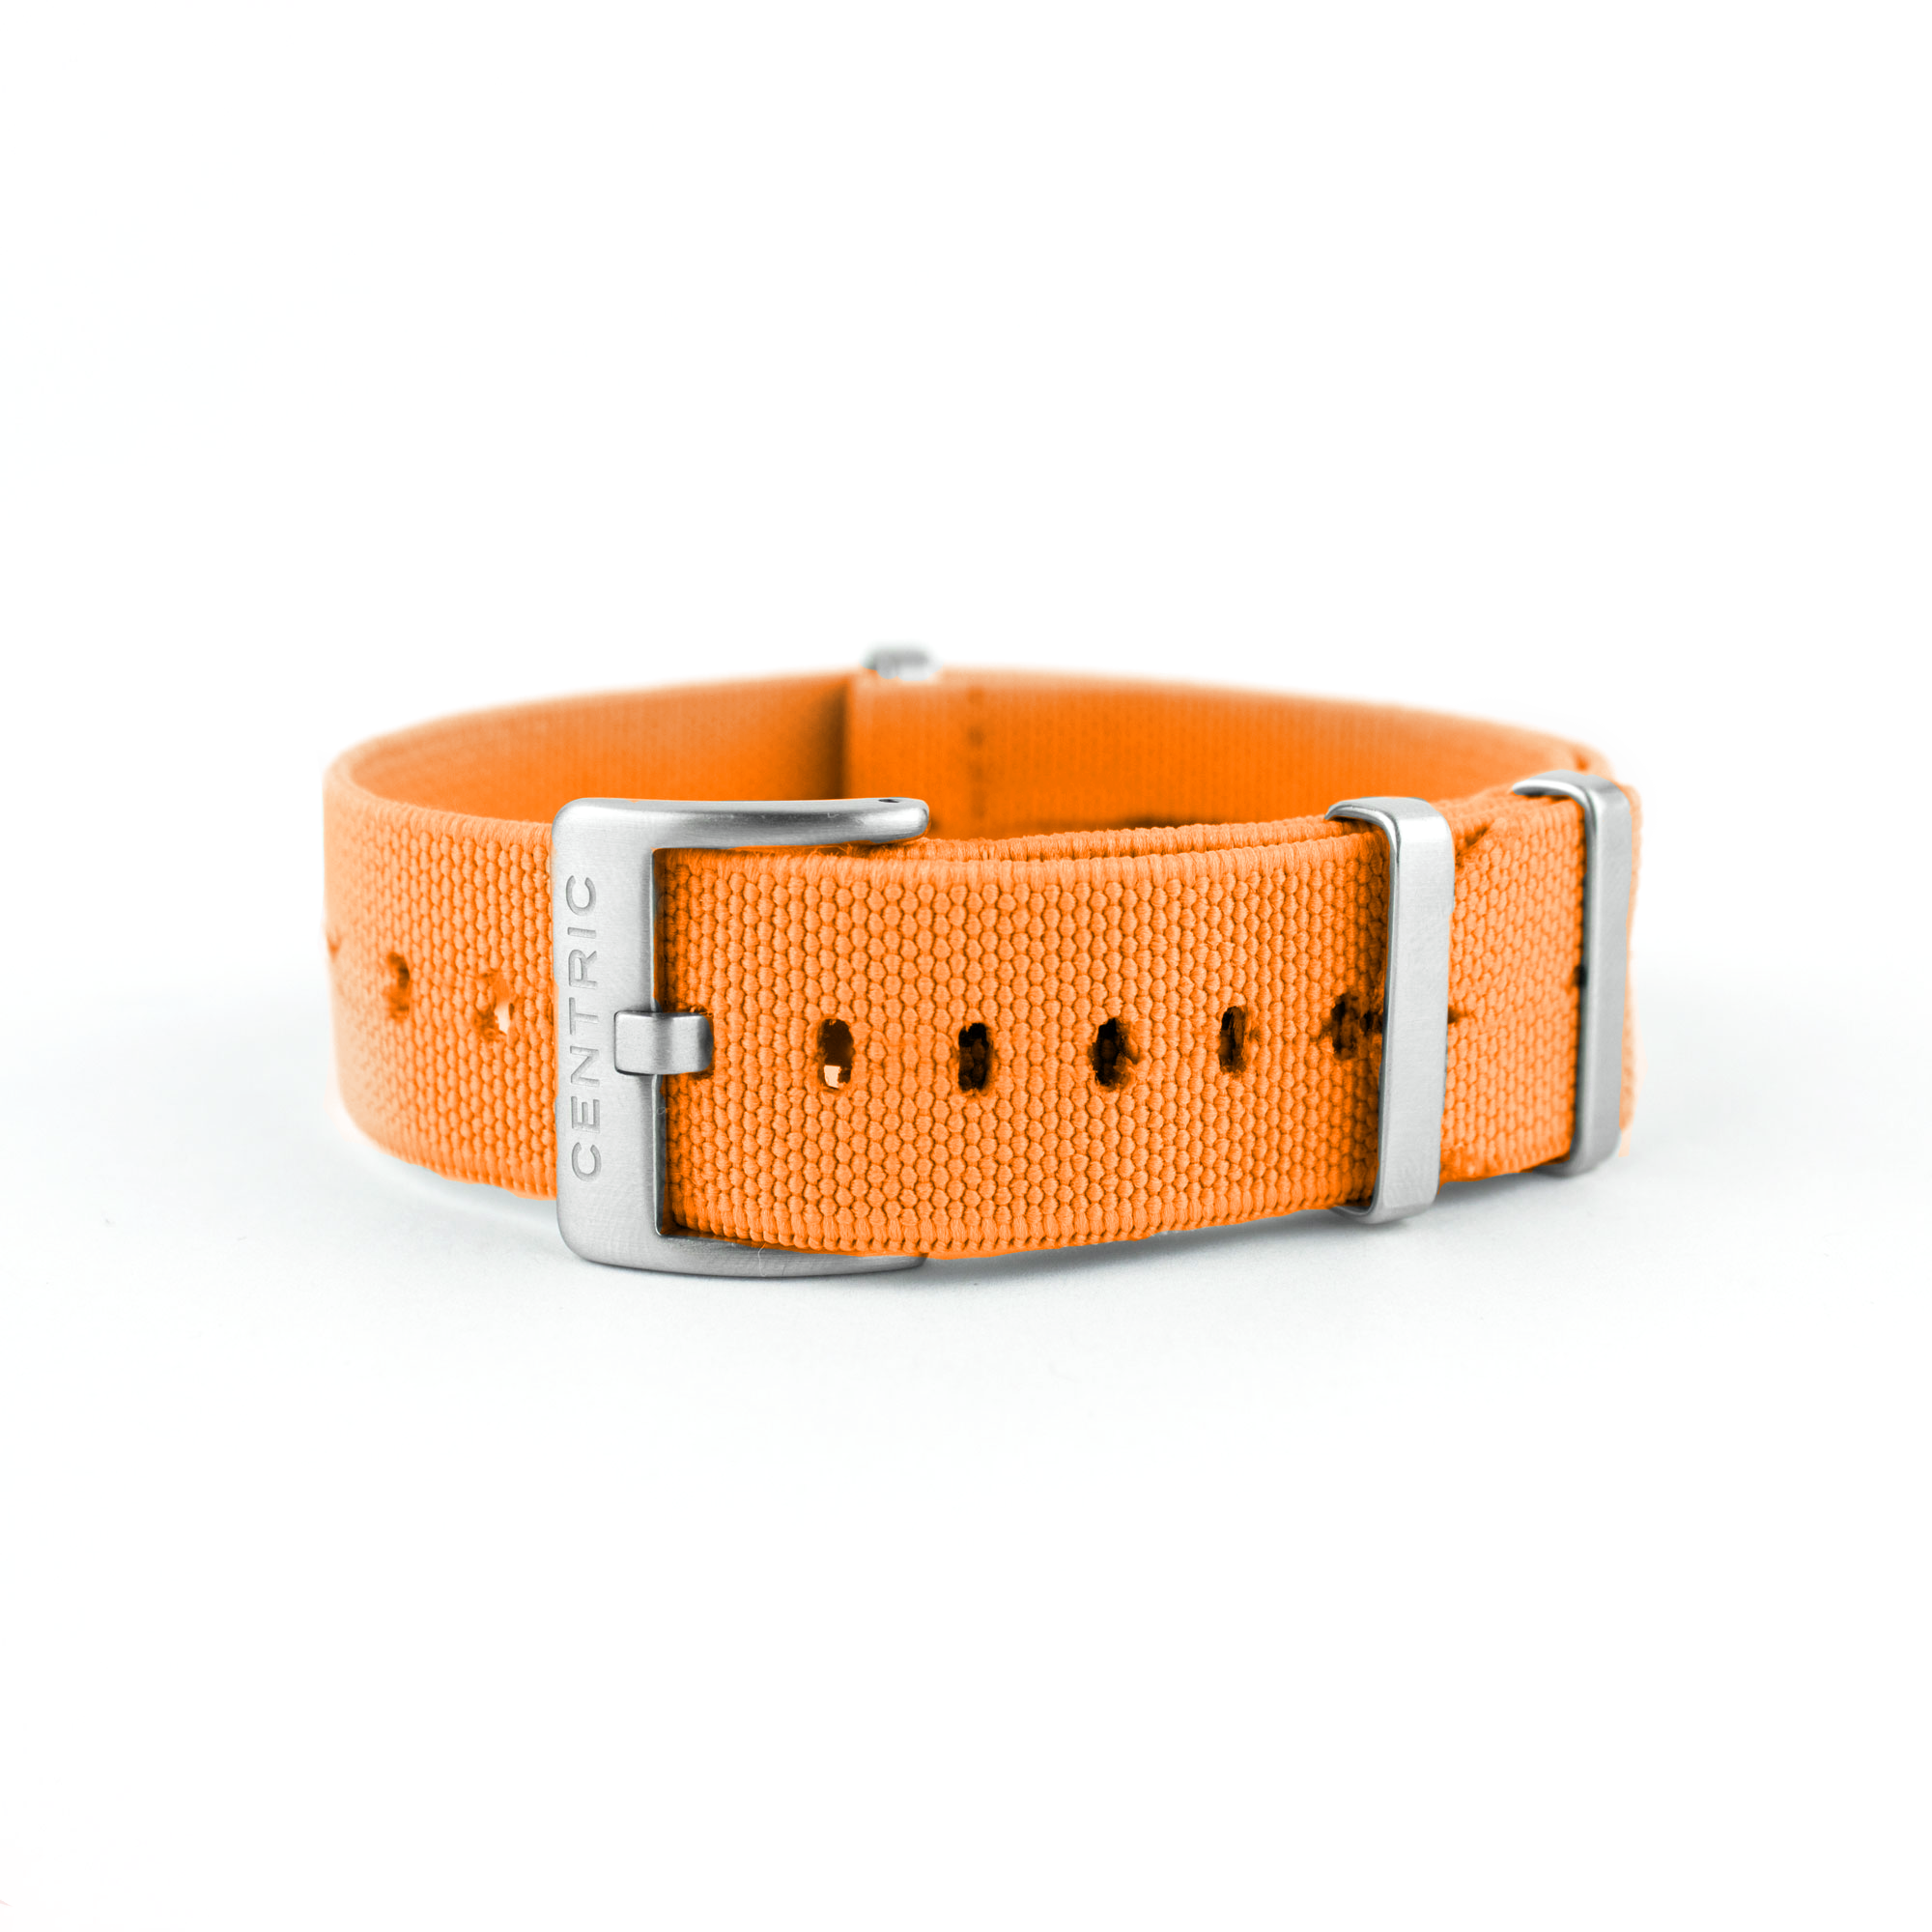 Elastic Nylon Strap - Safety Orange